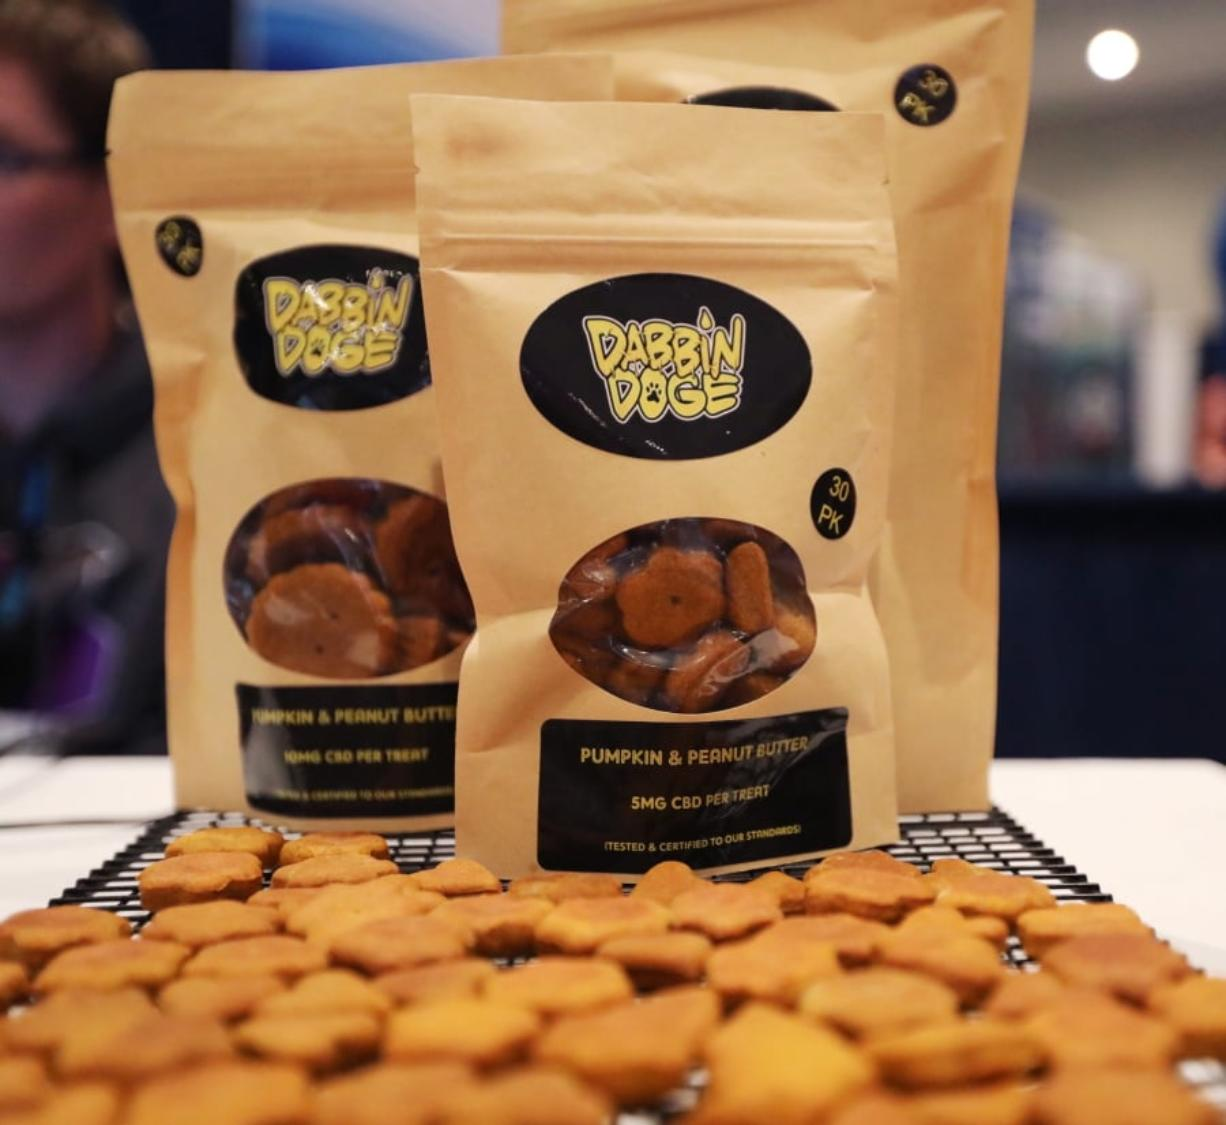 Dog treats are displayed at the Cannabis World Congress & Business Exposition trade show, Thursday, May 30, 2019 in New York. The treats contain non-psychoactive cannabidiol, CBD. They are marketed by DabbinDoge of New Providence, N.J. (AP Photo/Jeremy Rehm)